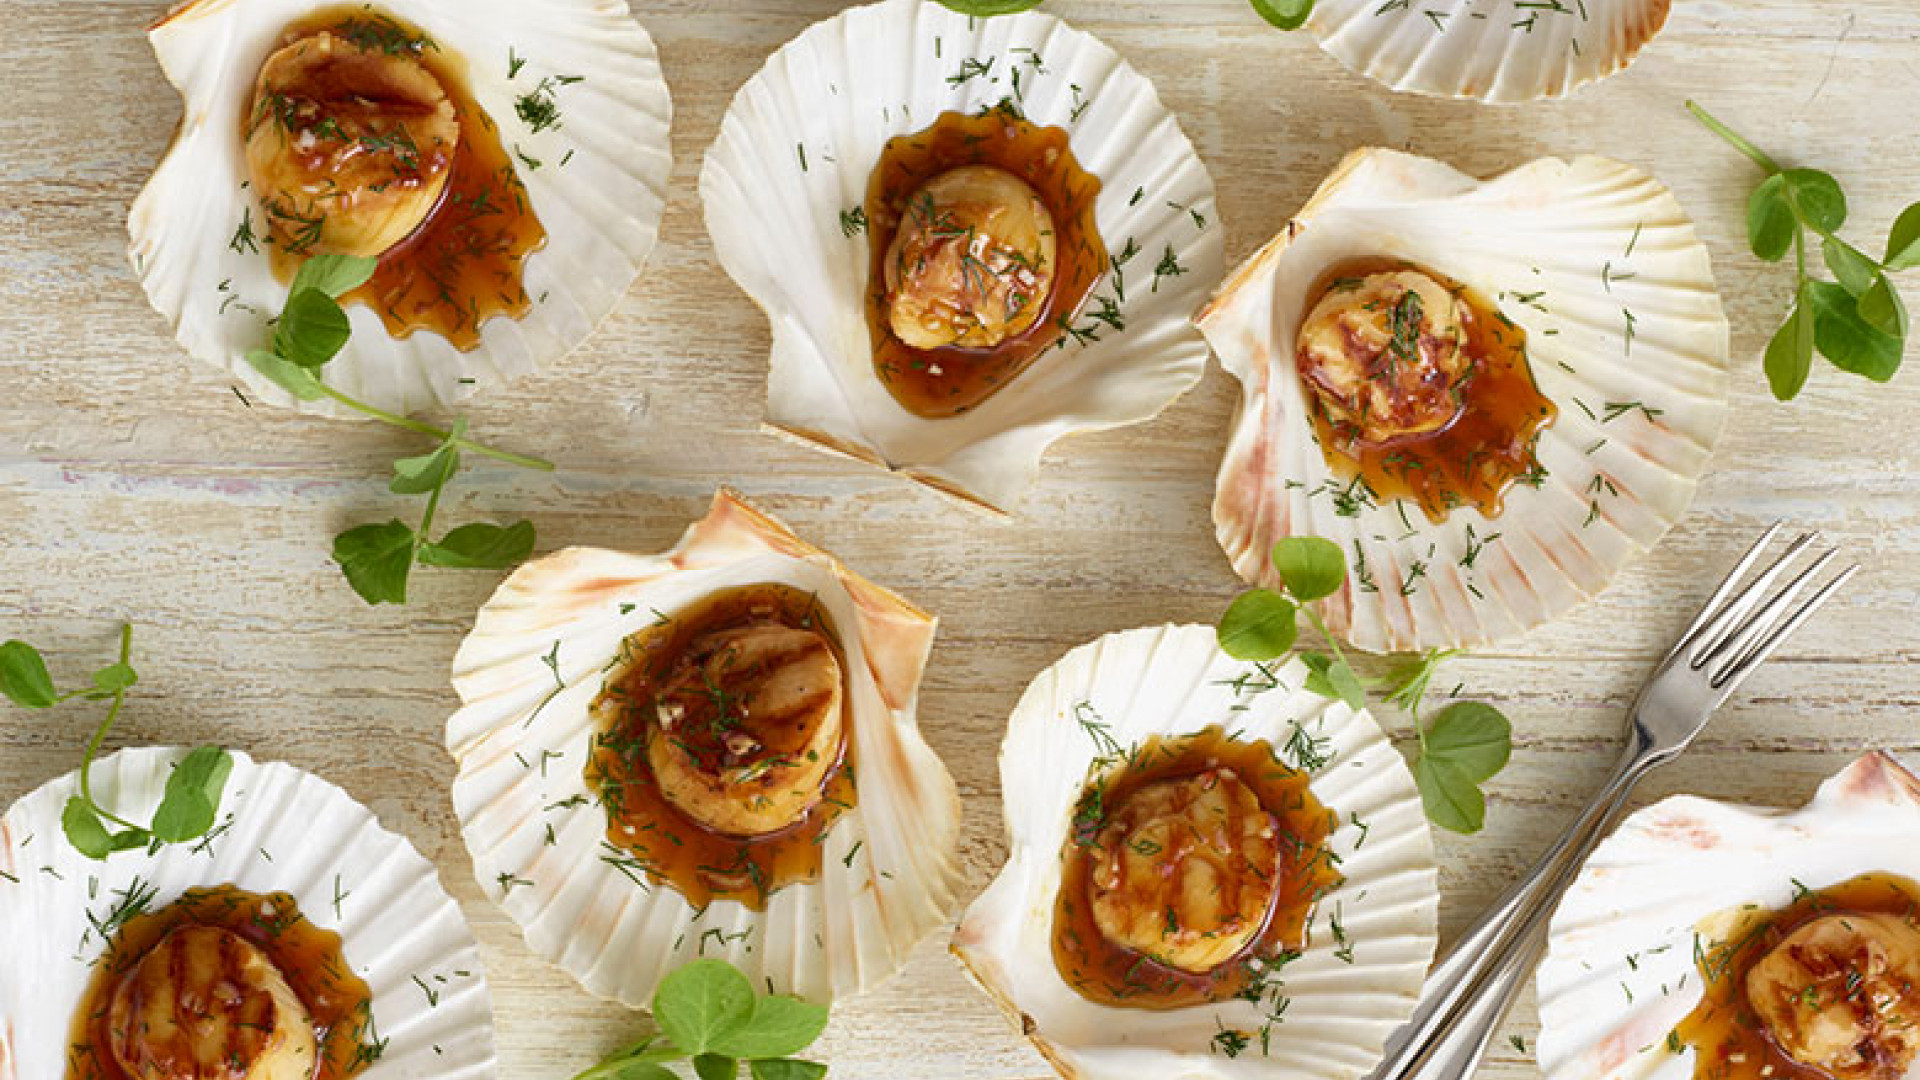 Grilled scallops with white wine and plum sauce